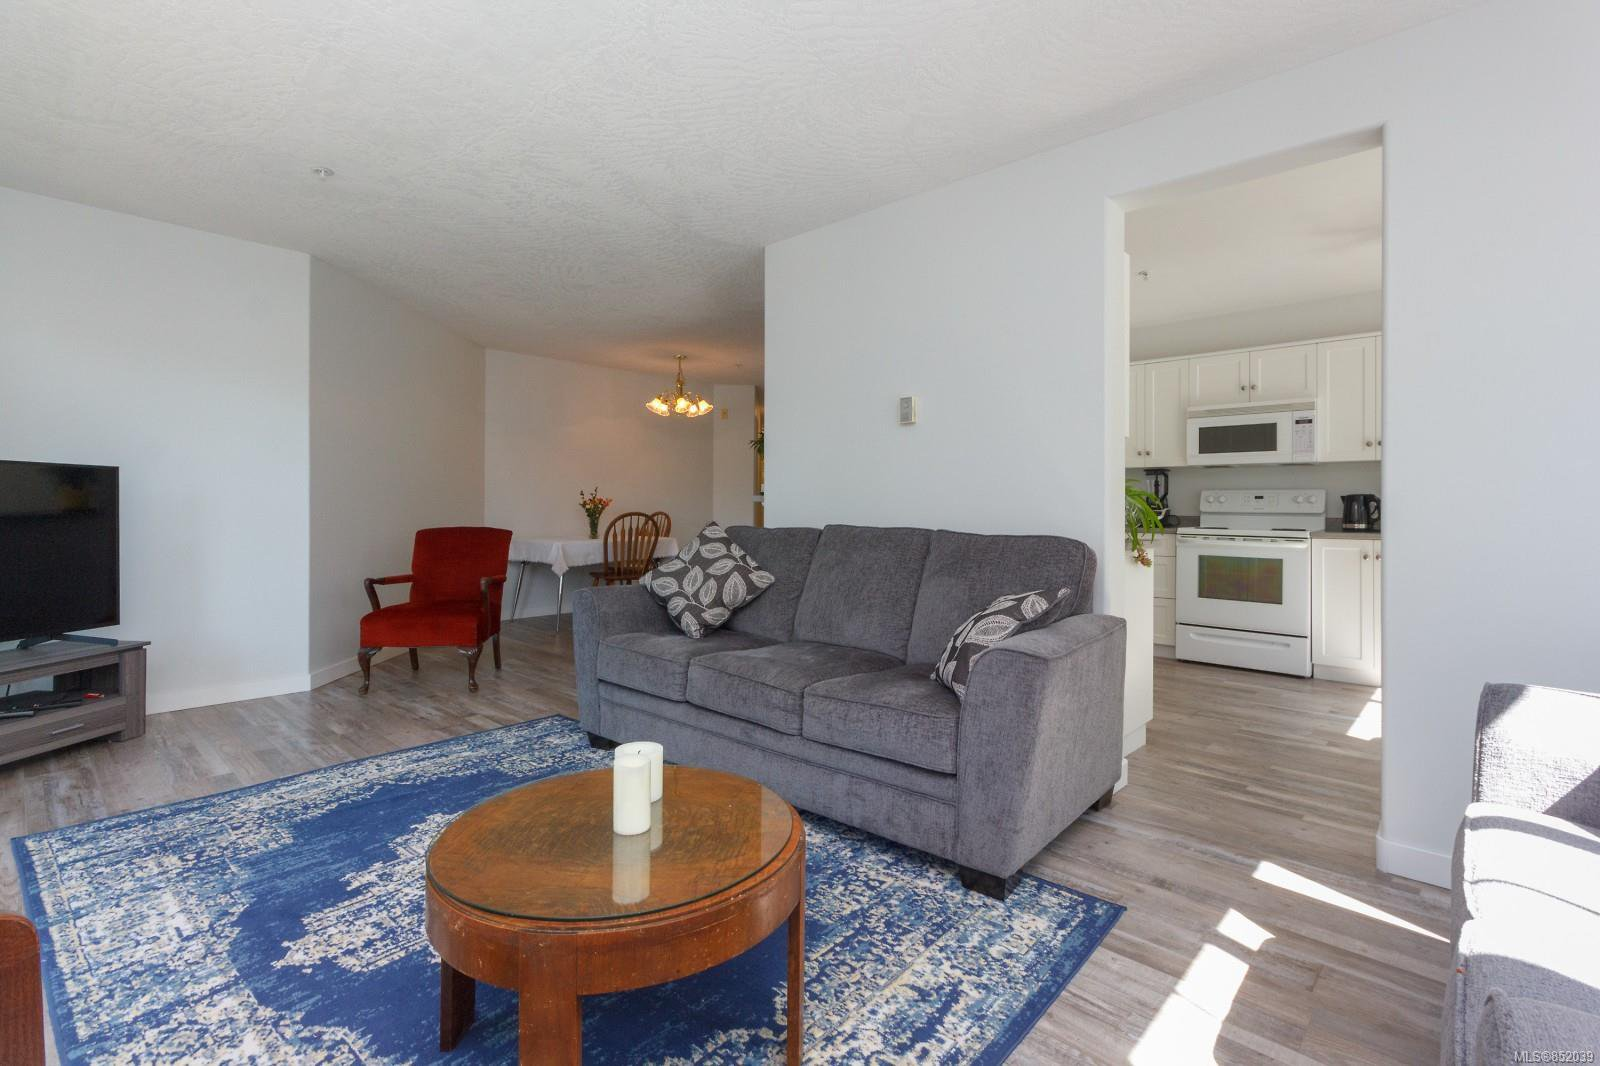 Photo 8: Photos: 109 1240 Verdier Ave in : CS Brentwood Bay Condo for sale (Central Saanich)  : MLS®# 852039